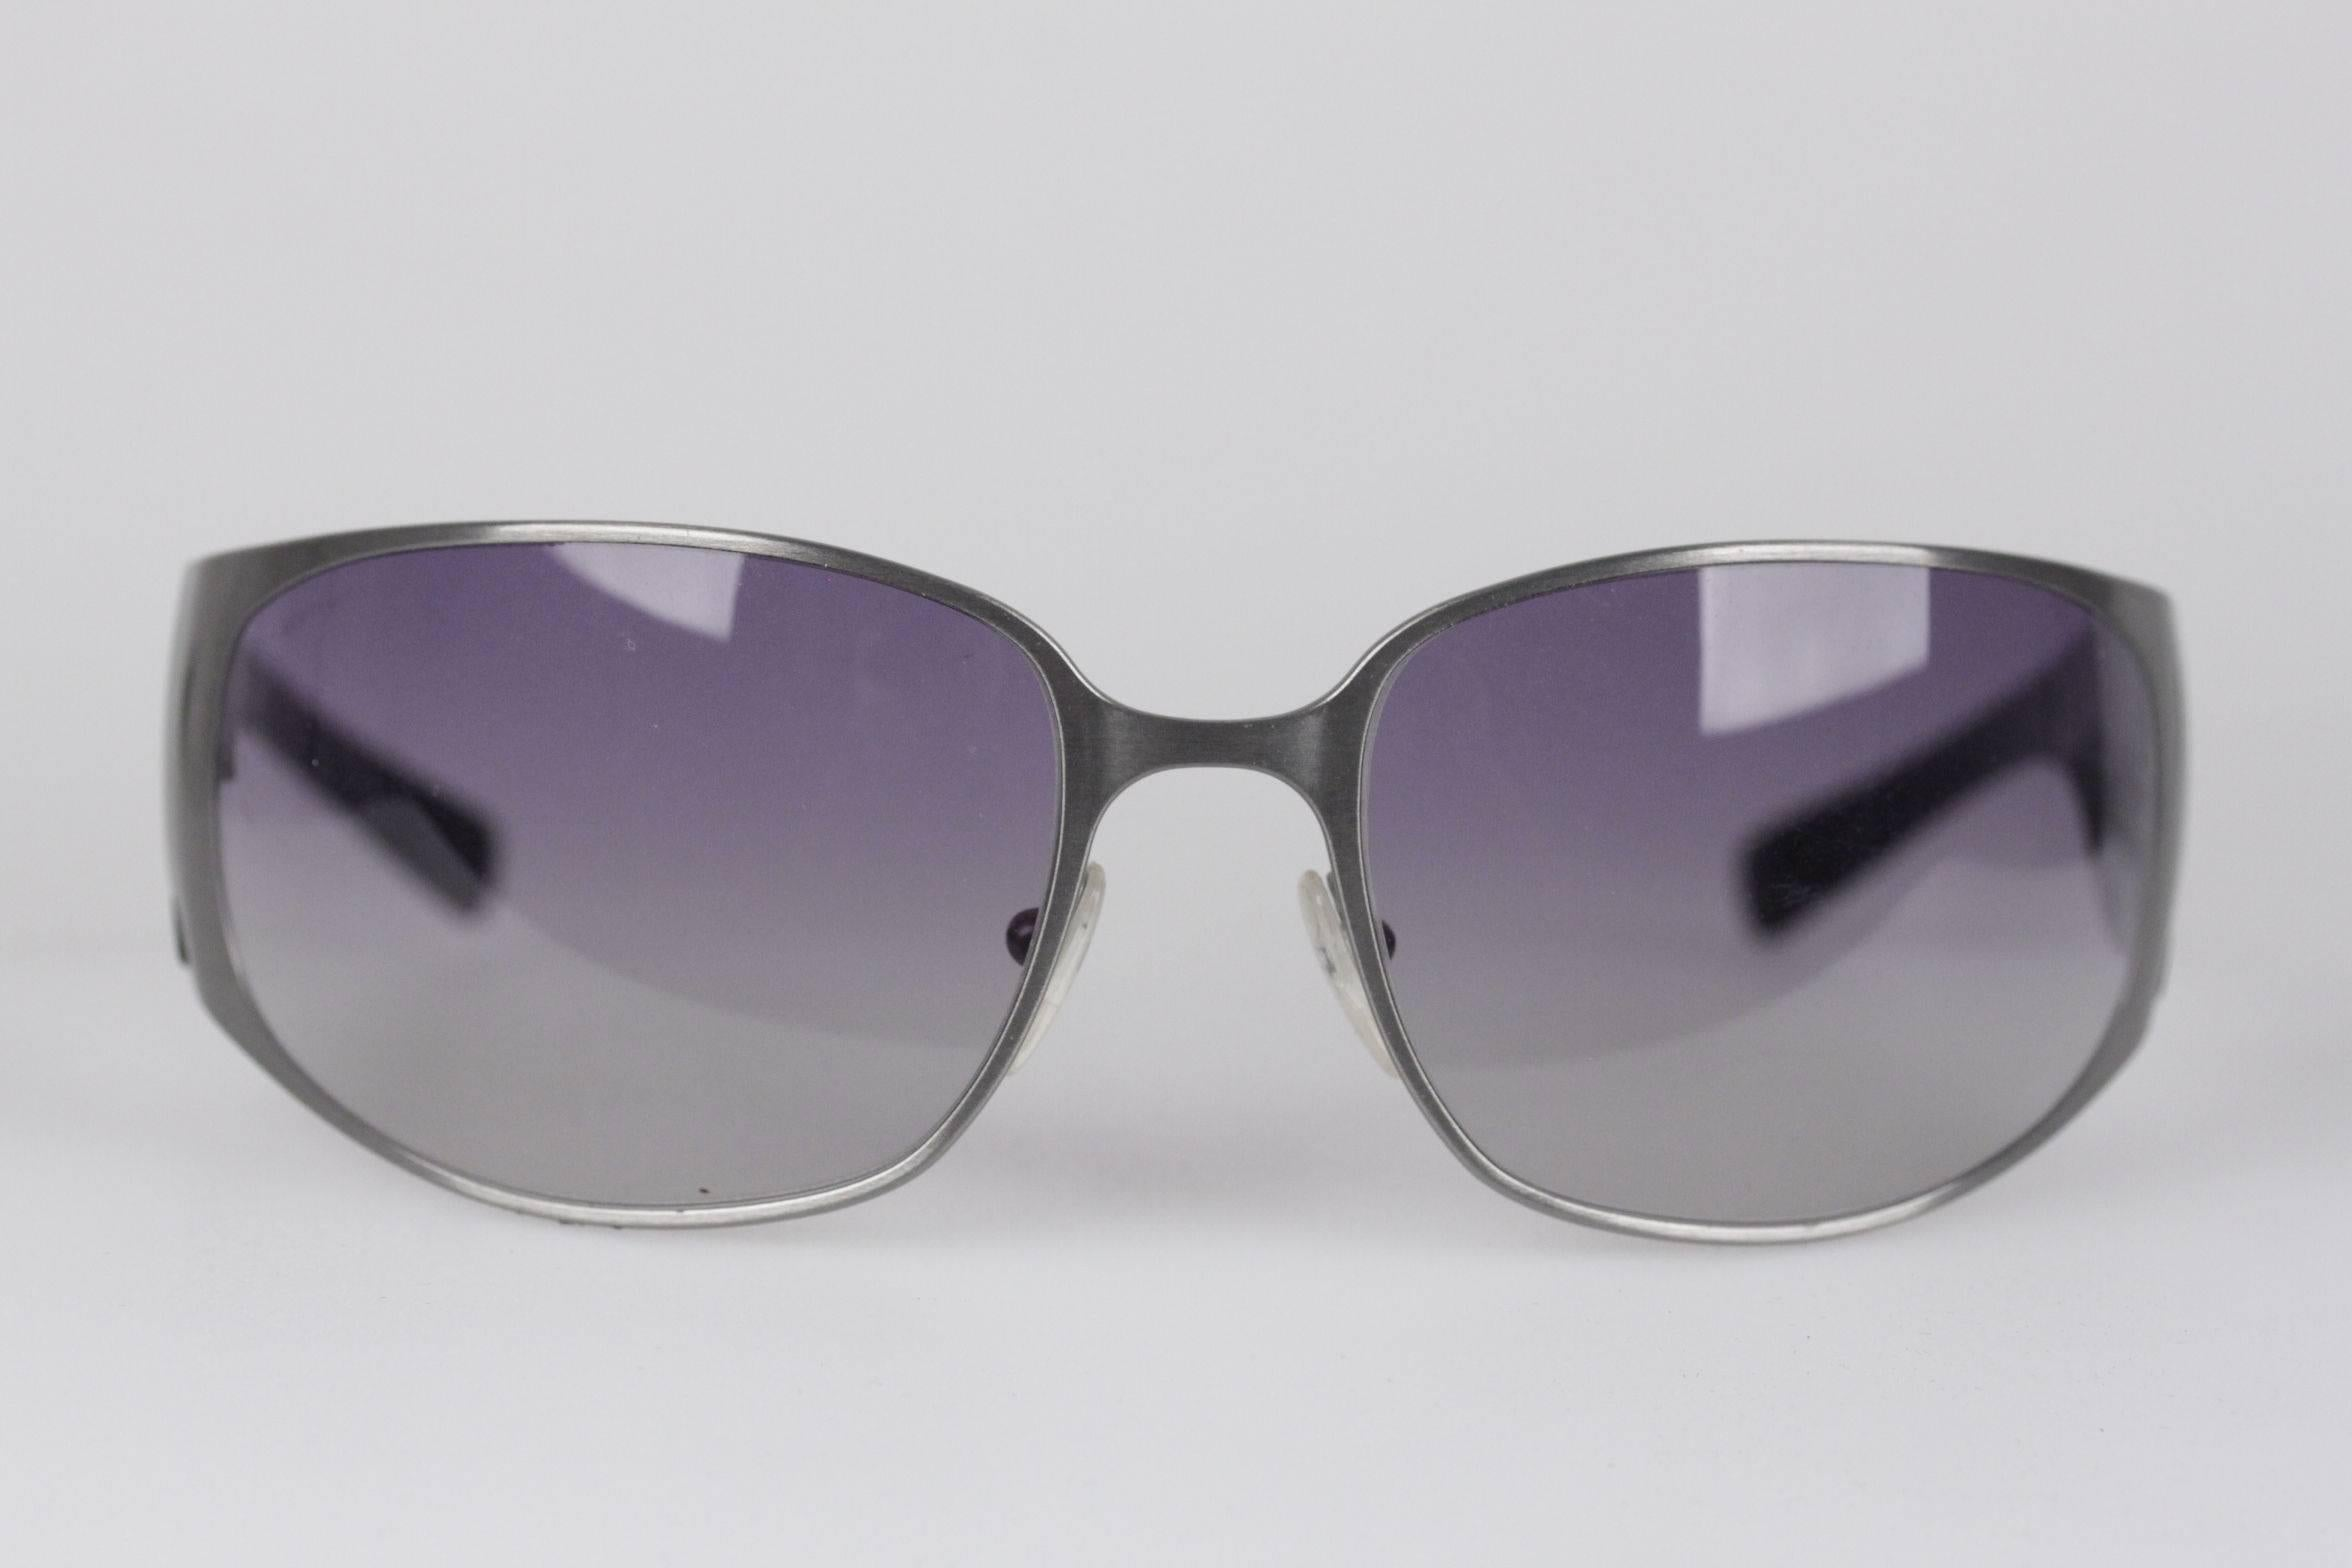 a173fe6e980e ... greece prada new wrap silver metal and black womens sunglasses spr 50g  63mm 115 for sale